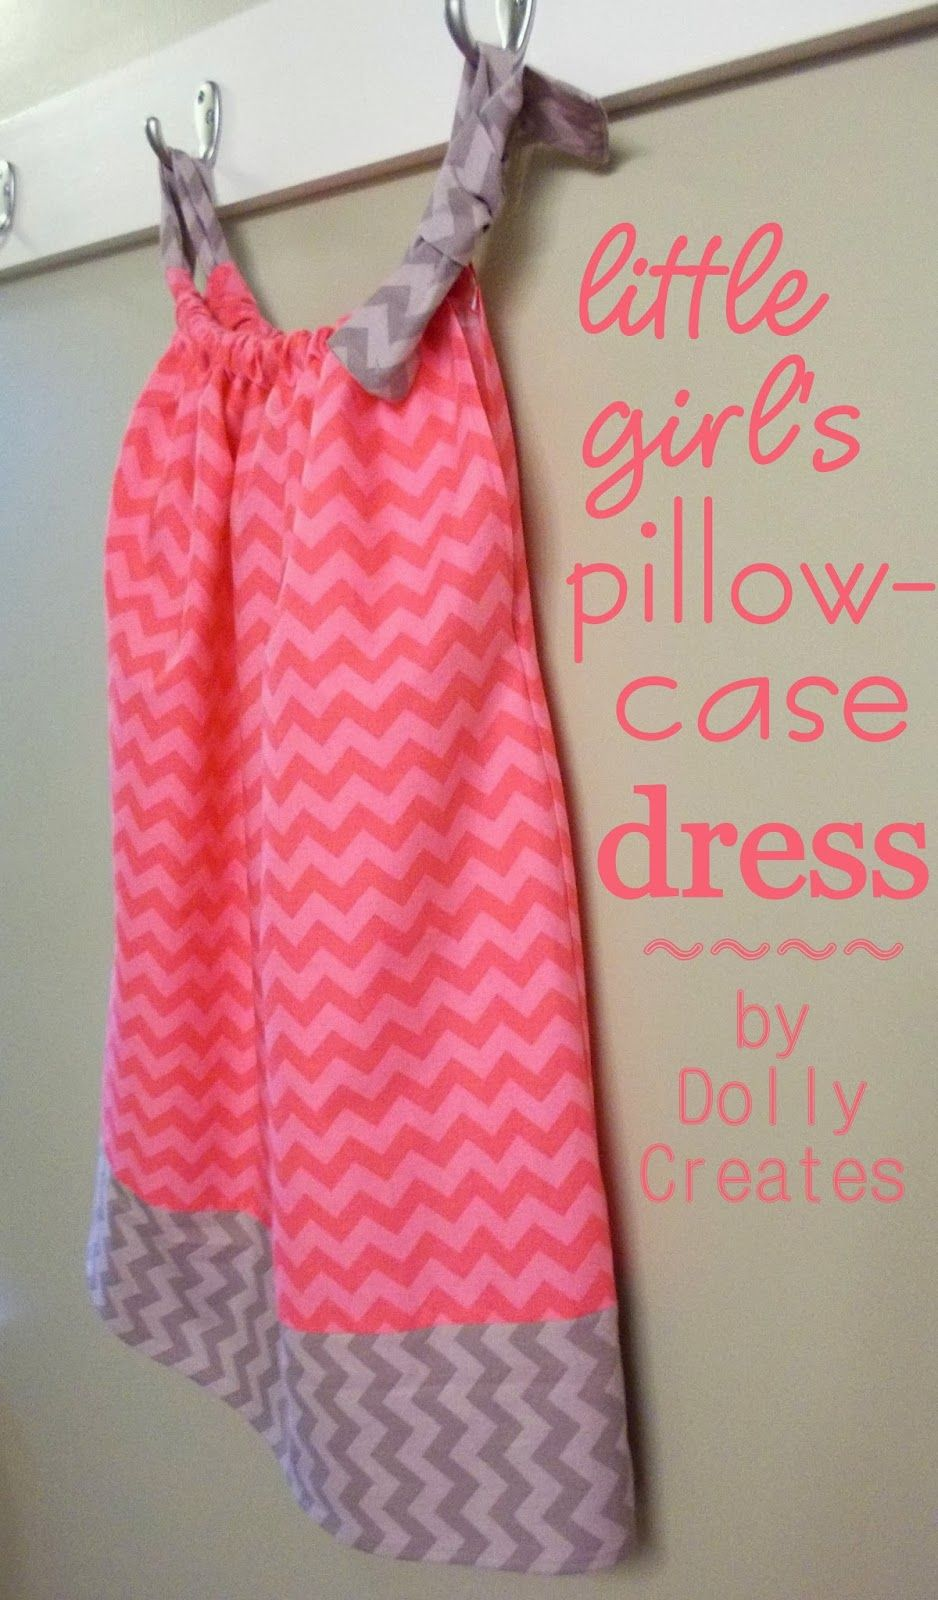 Dolly Creates: Little Girl\'s Pillowcase Dress | All things sewing ...